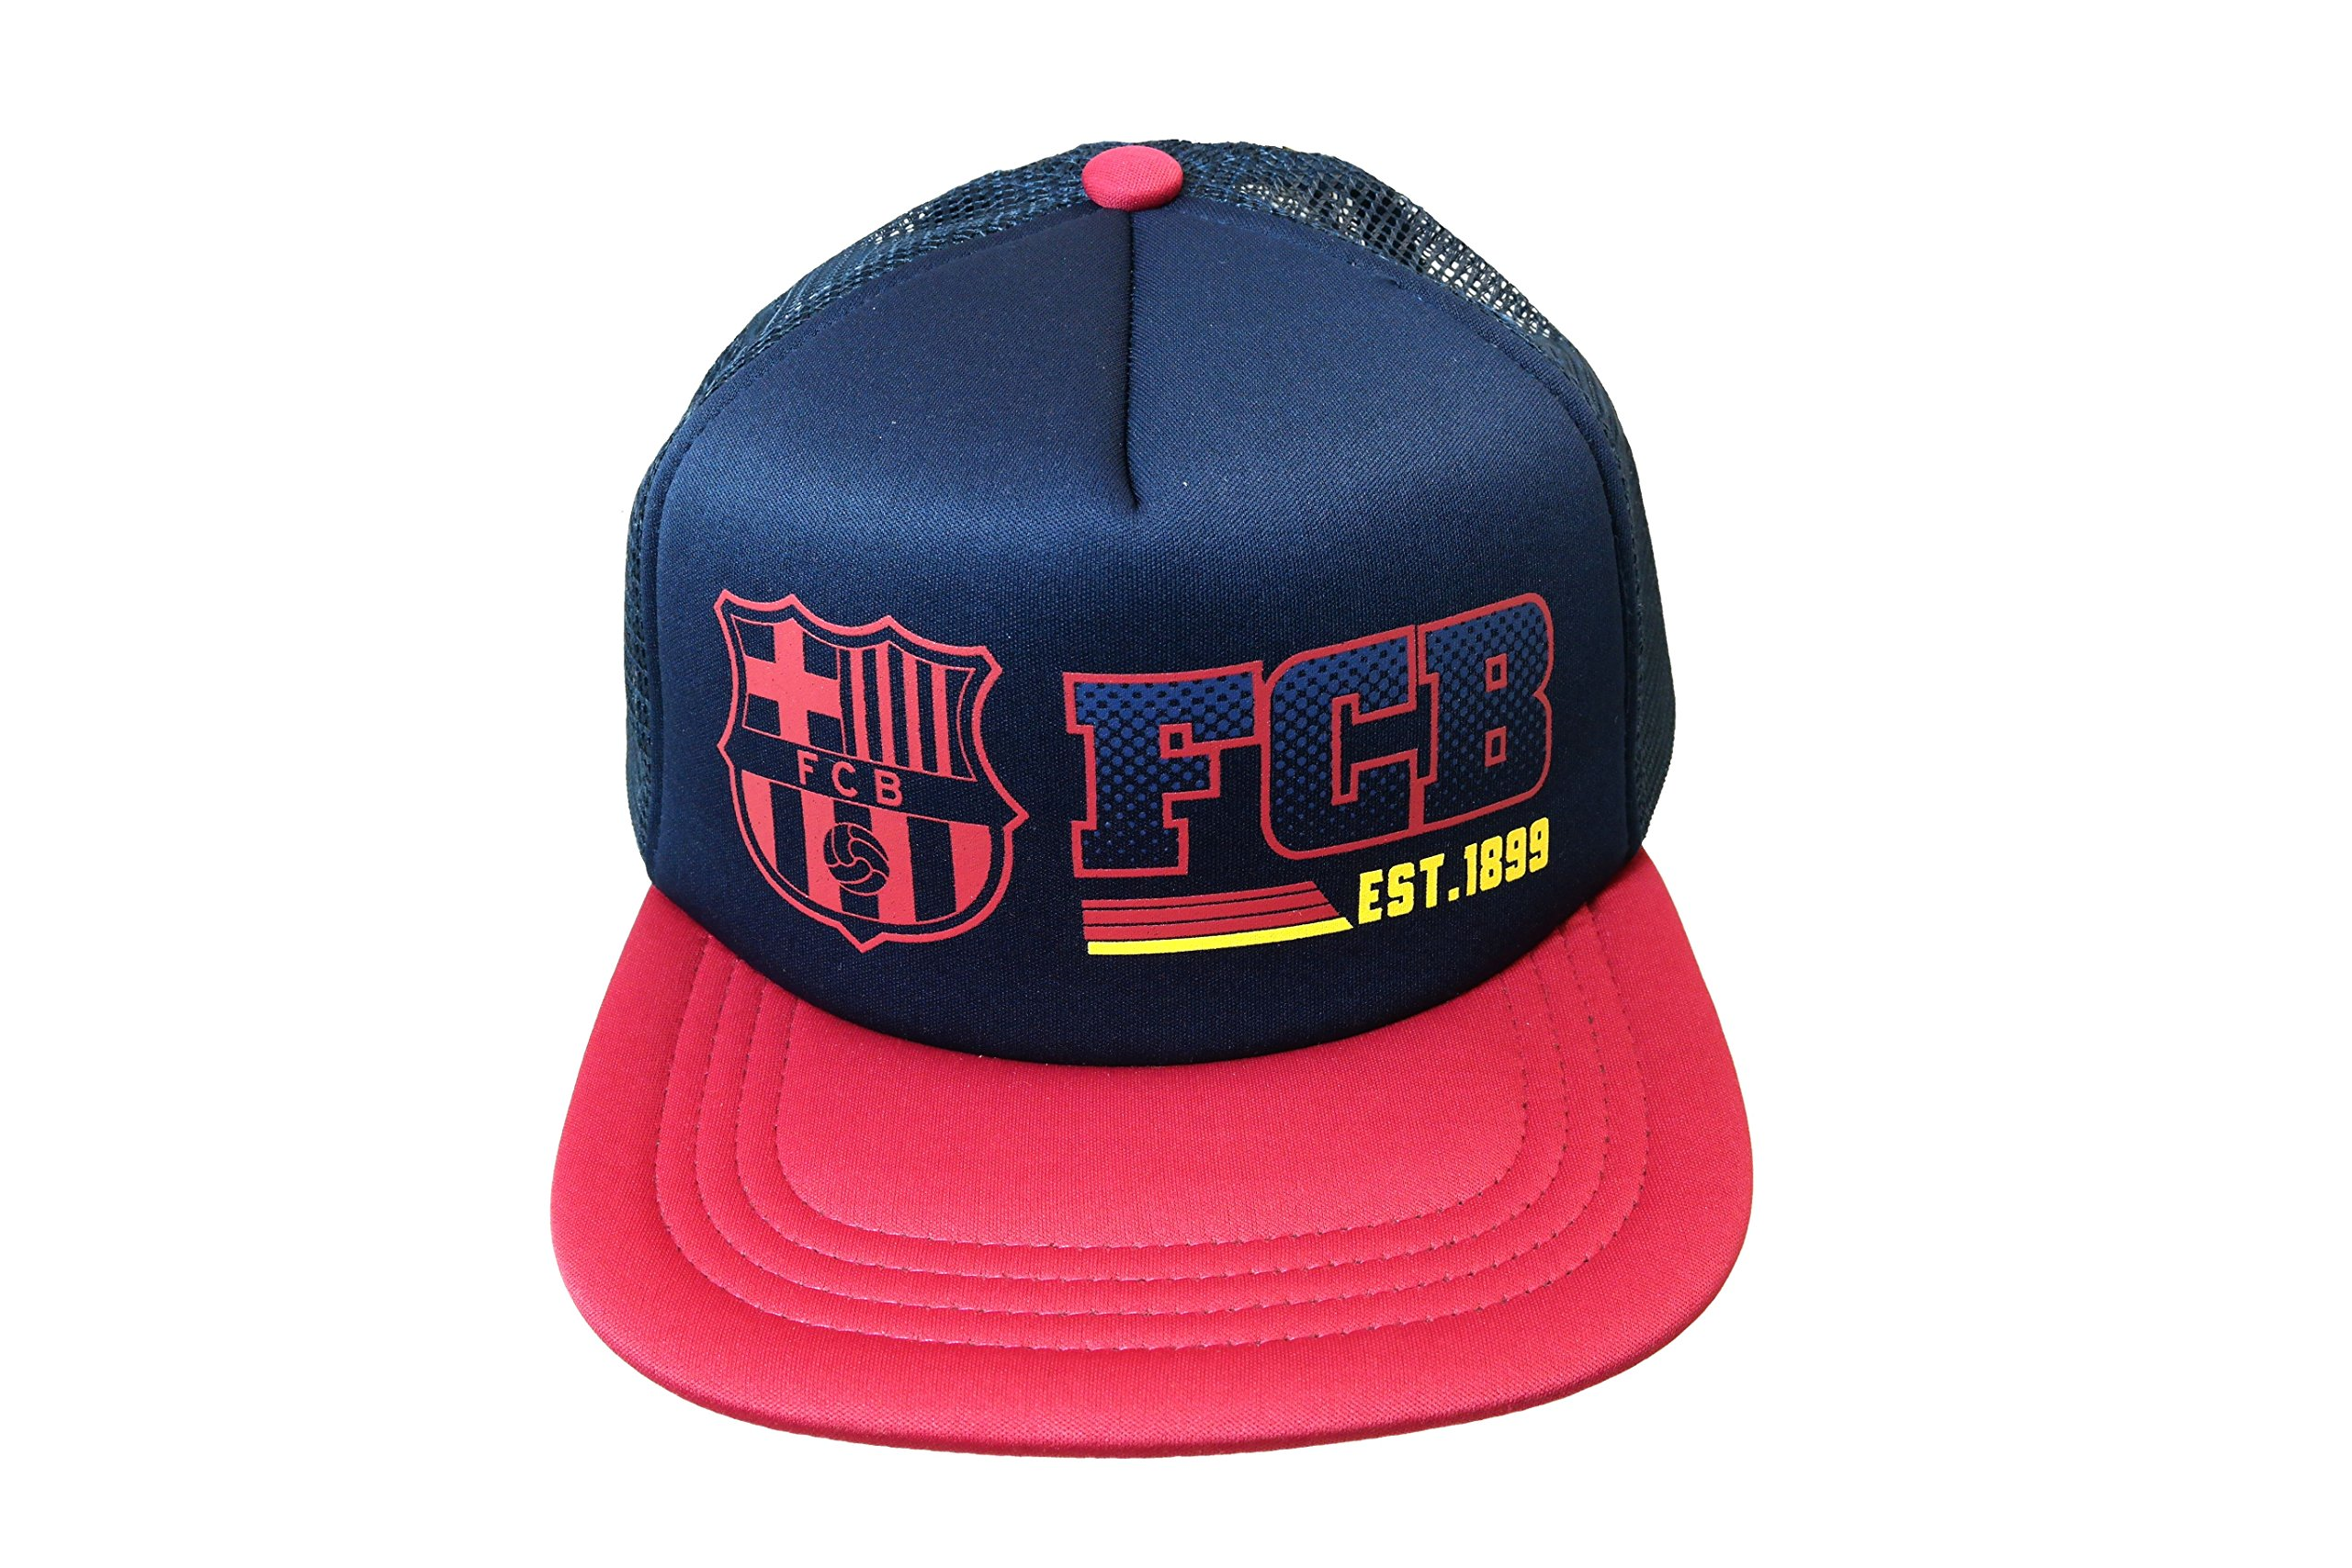 FC Barcelona Hat Cap Adjustable 2-Tone-Navy/Maroon